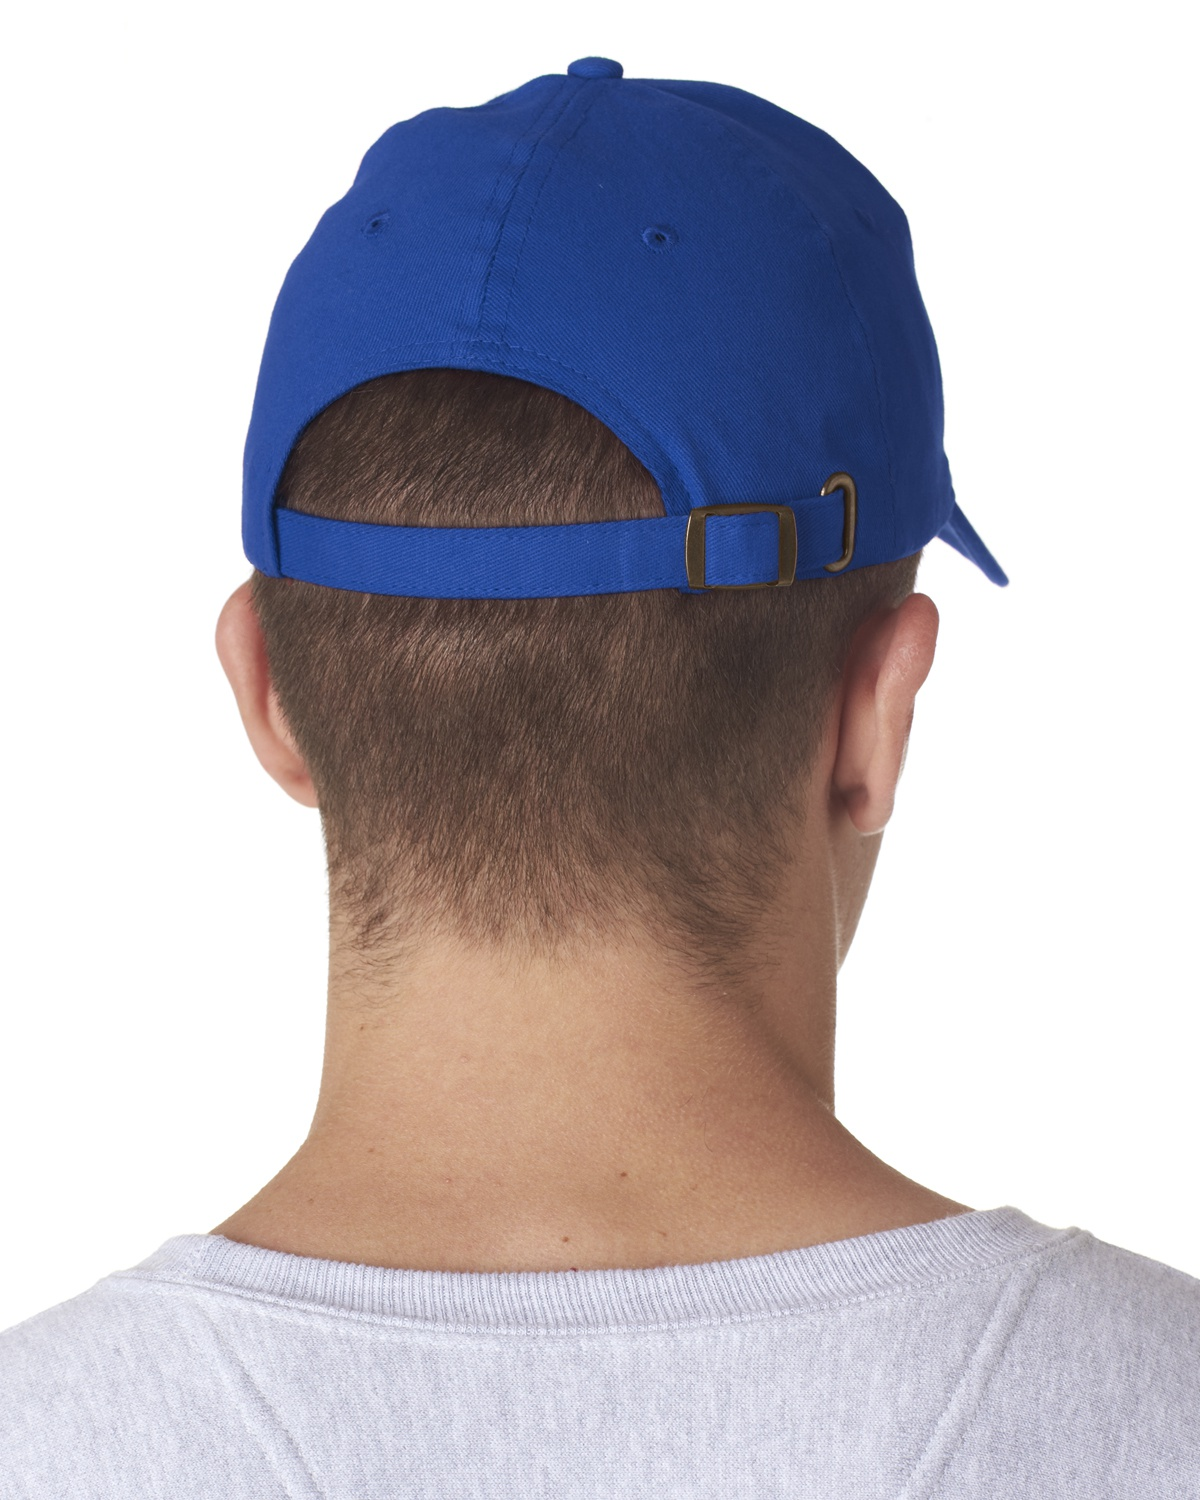 'UltraClub 8110 Adult ClassicCut Brushed Cotton Twill Structured Cap'